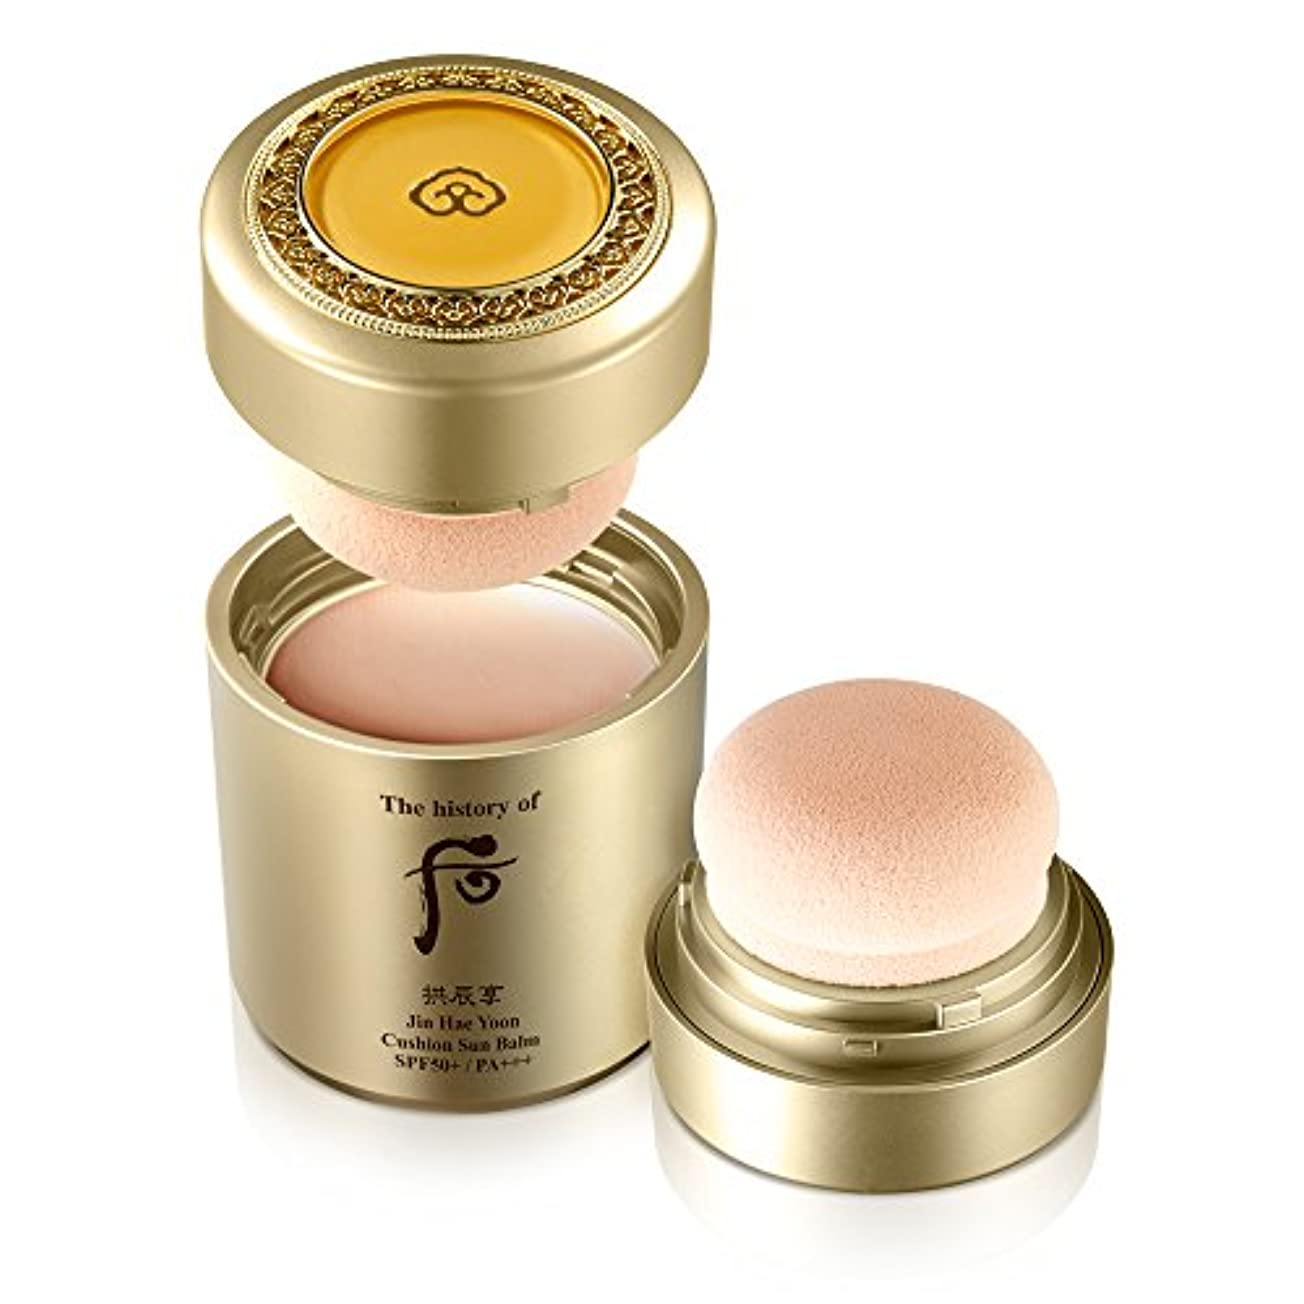 言う市場フランクワースリーThe History of Whoo Gongjinhyang Jinhaeyoon All-in-one Cushion Sun Balm 13g[並行輸入品]